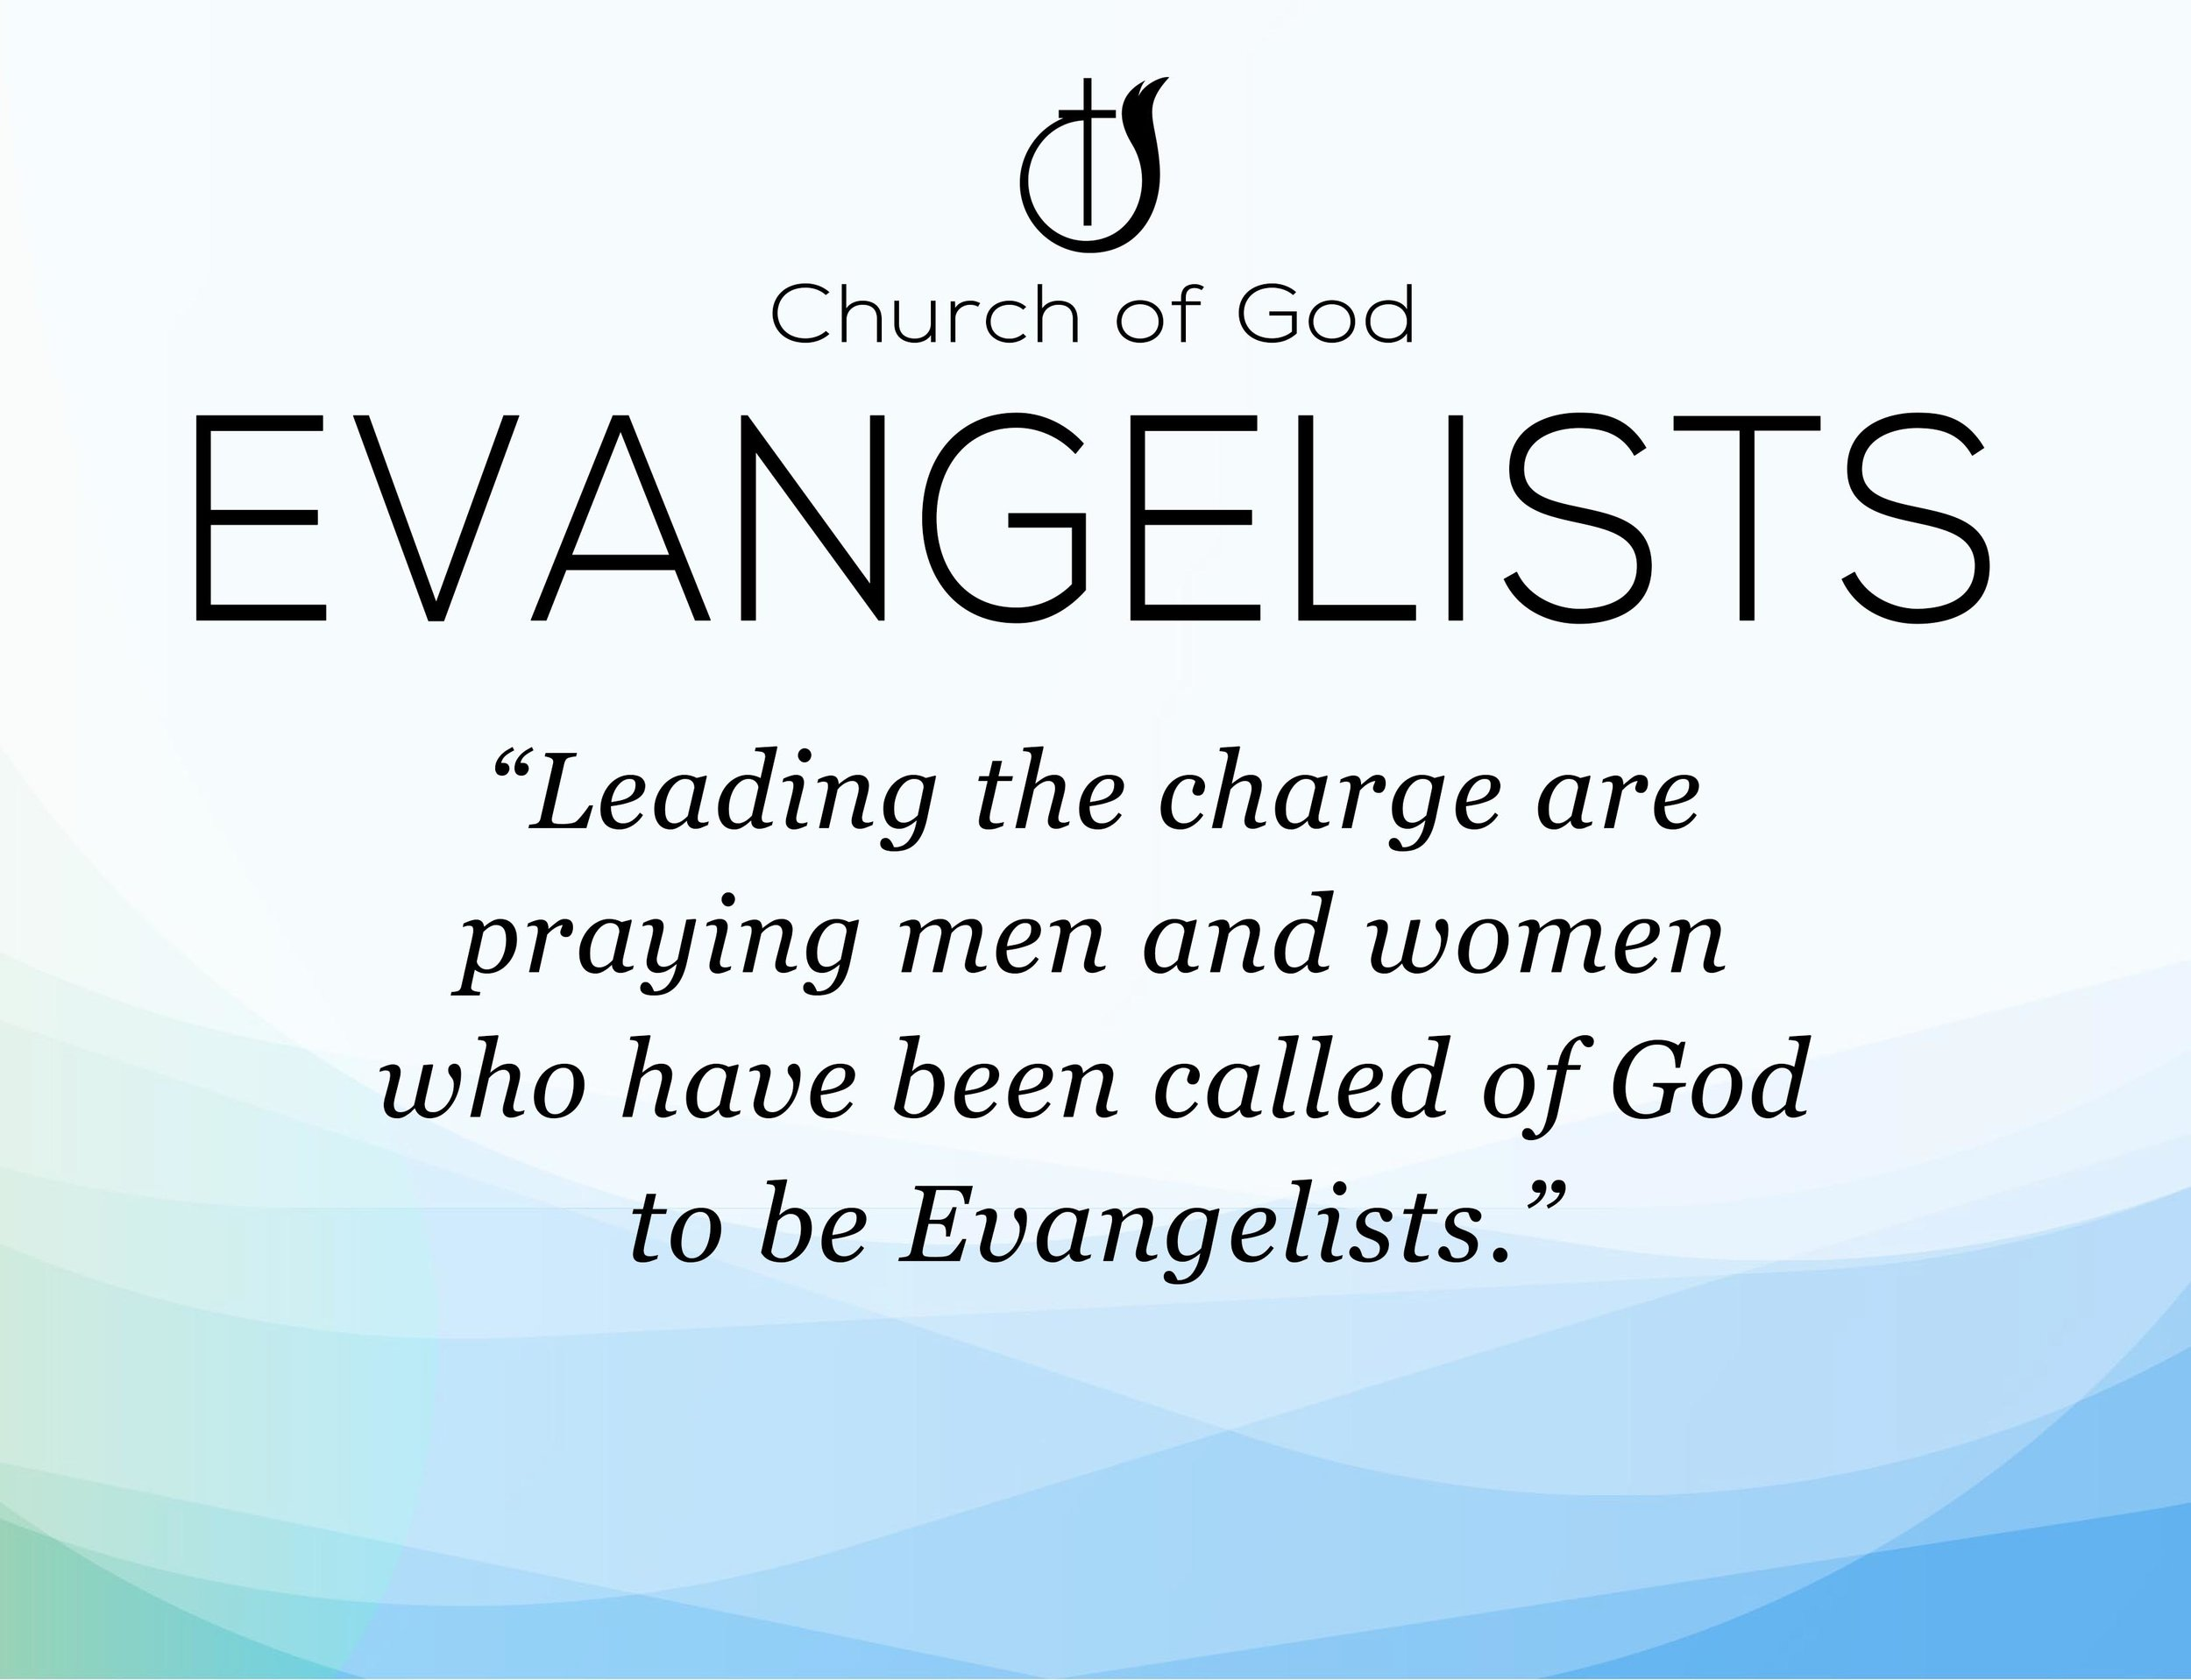 Church of God - EVANGELISTS